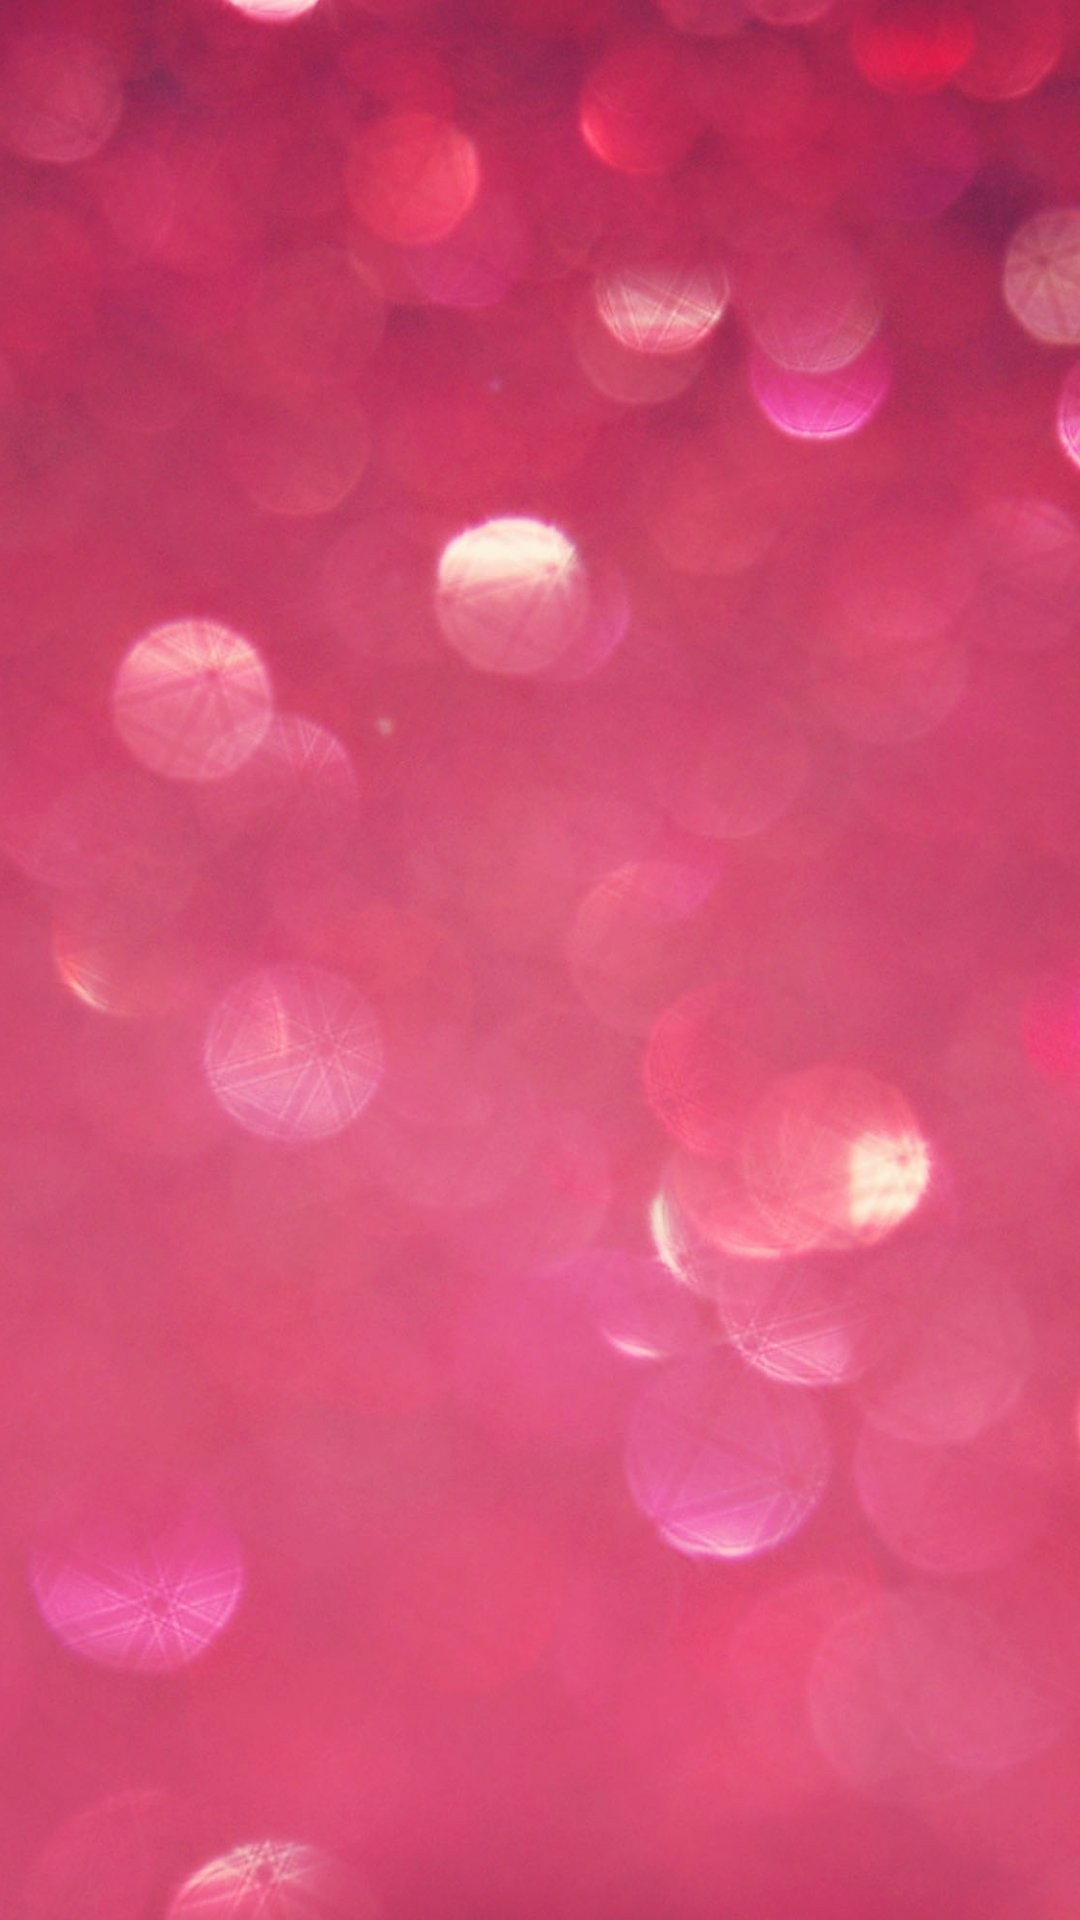 Pink Glitter iPhone 6 Plus Wallpaper 26004 – Abstract iPhone 6 Plus  Wallpapers